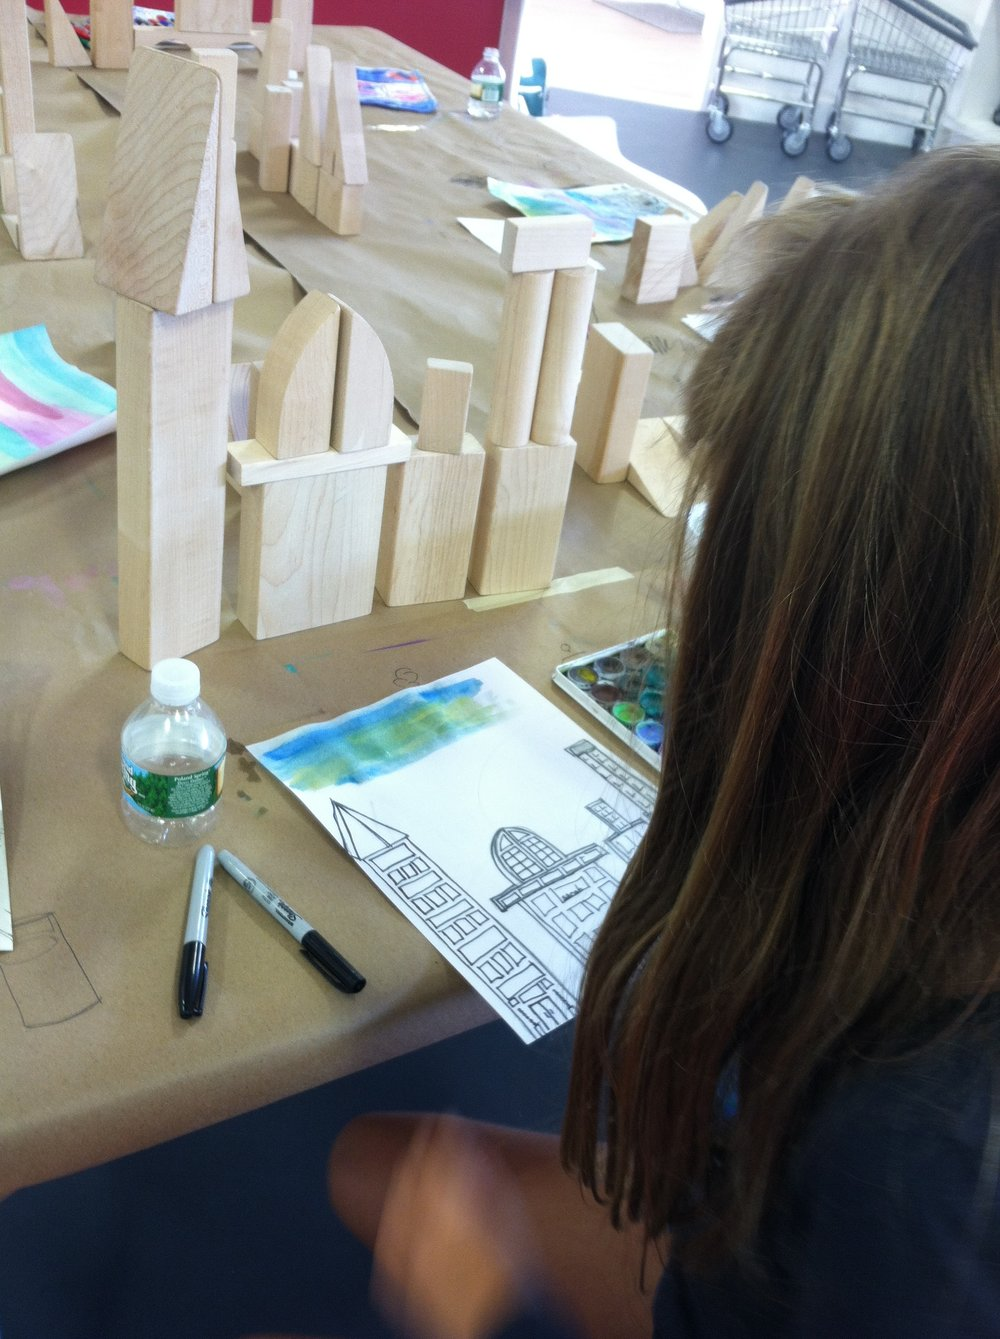 Students working on observational architectural drawings.